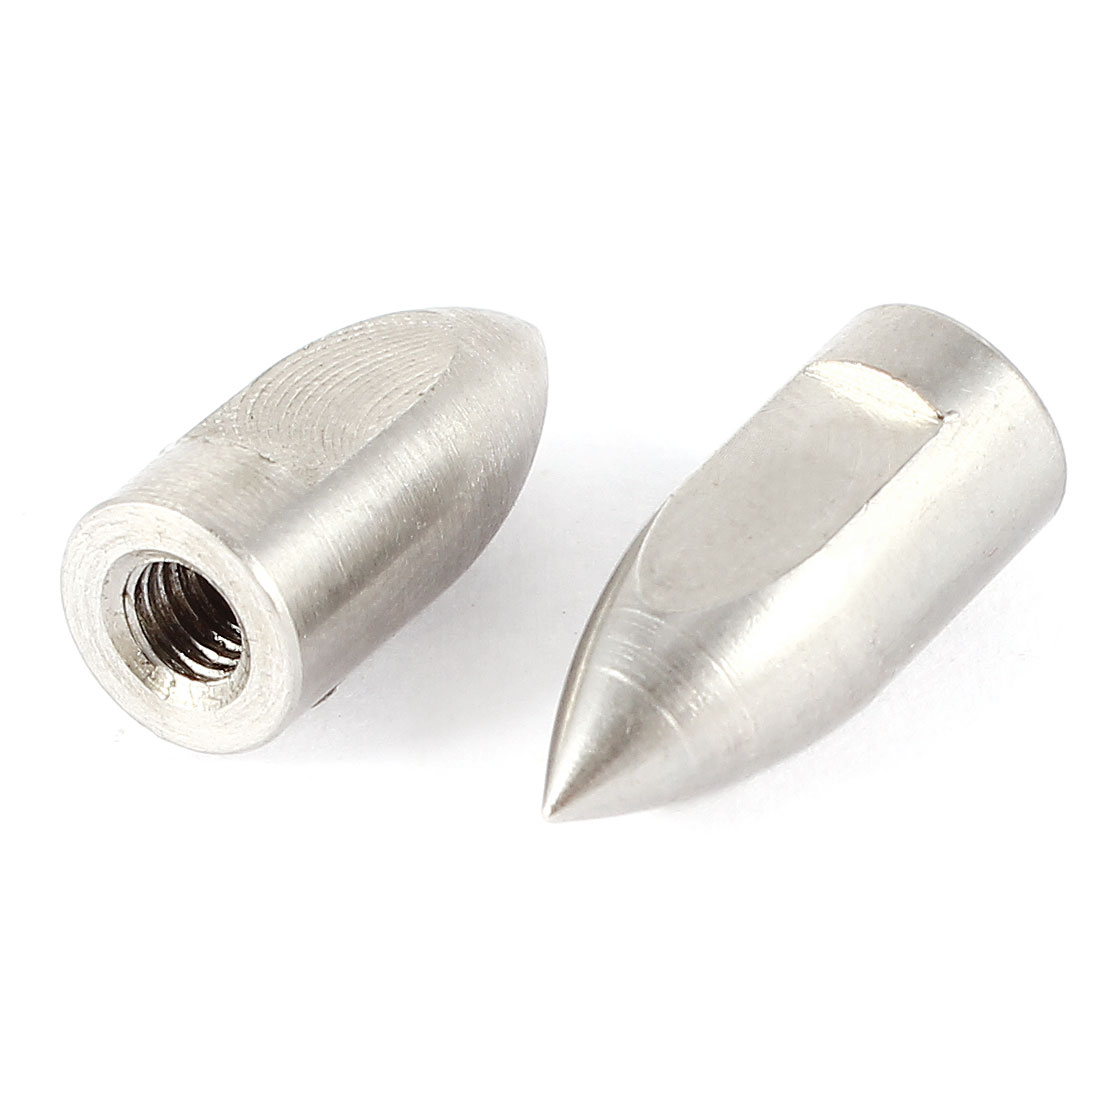 2 Pcs 18mm x 8mm Stainless Steel Flexshaft Prop Nut Replacement for Remote Control Boat 4mm Shaft